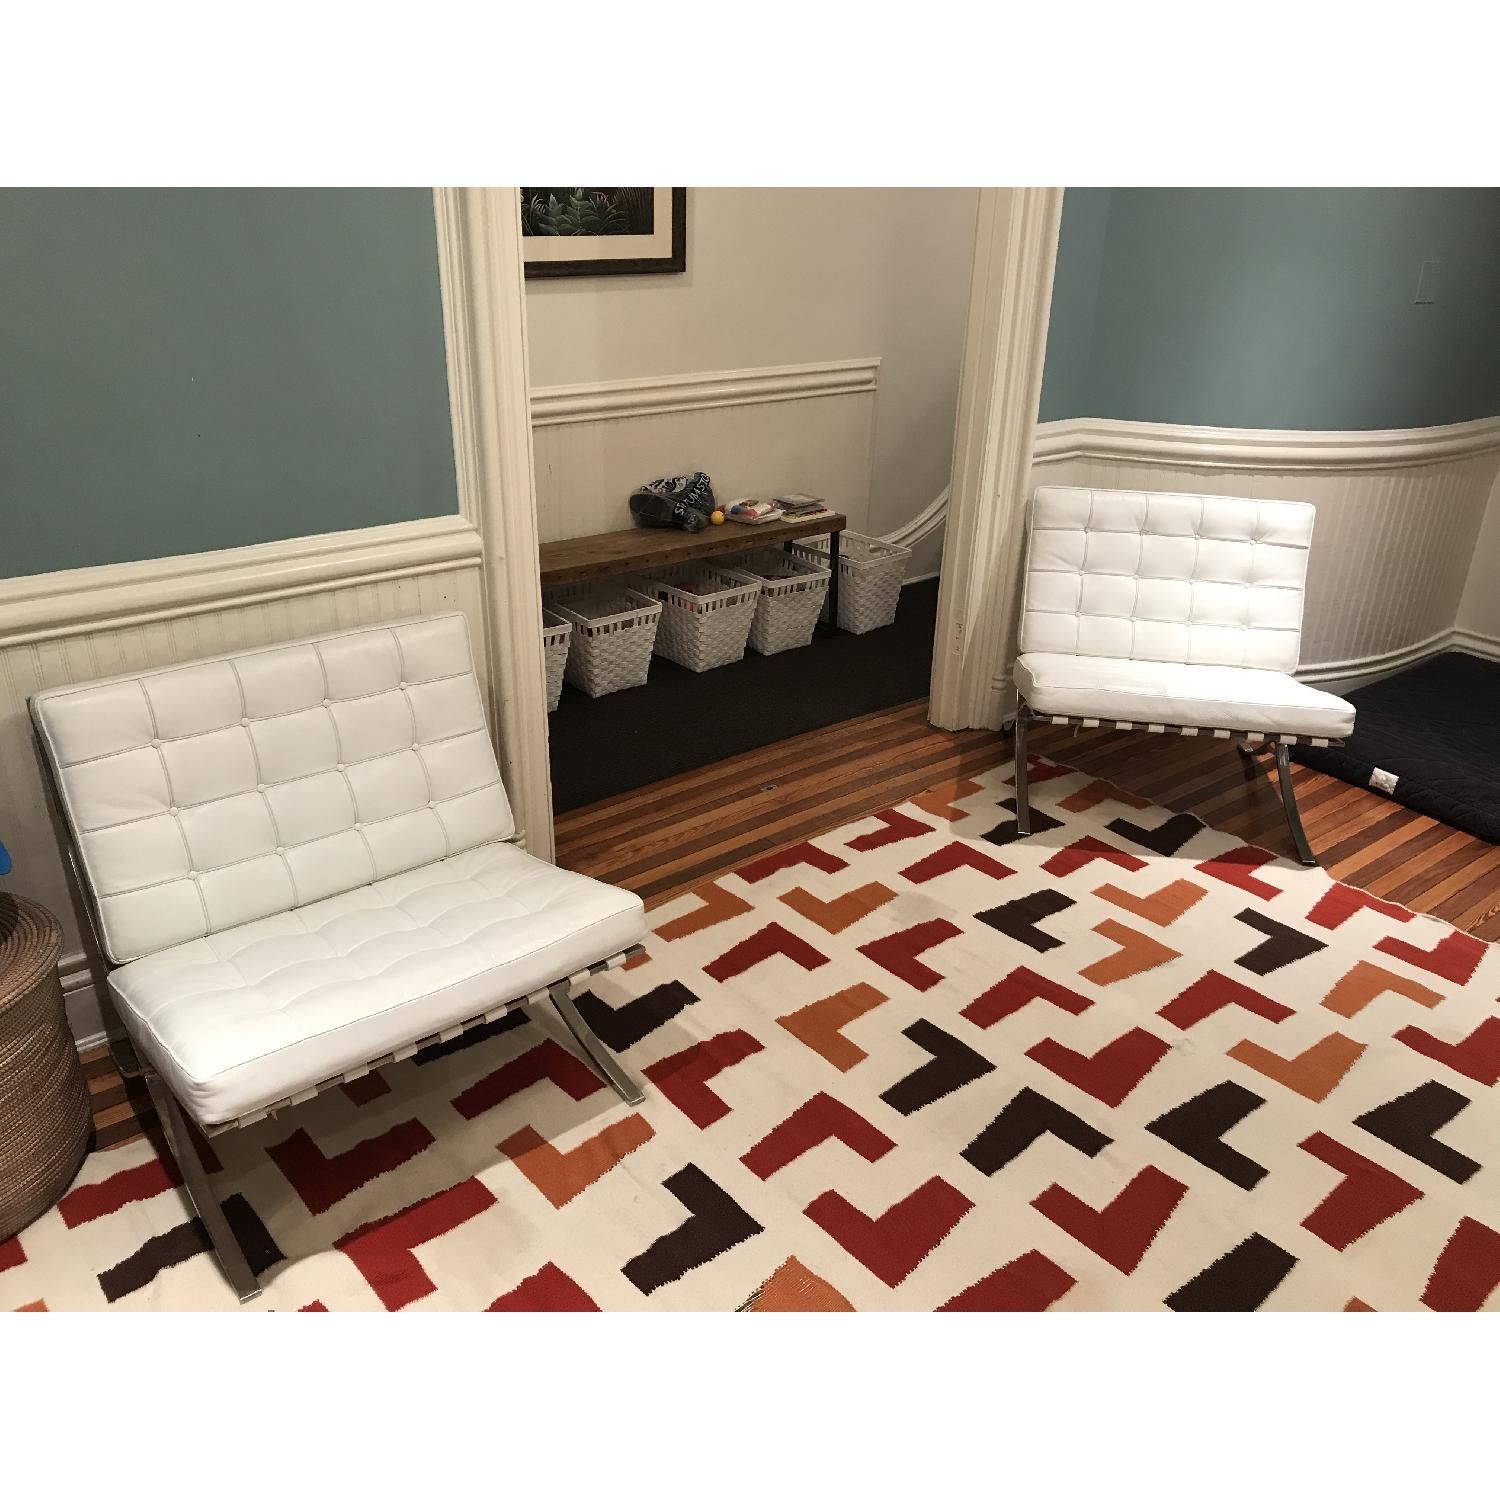 White Leather Barcelona Replica Chairs - image-2